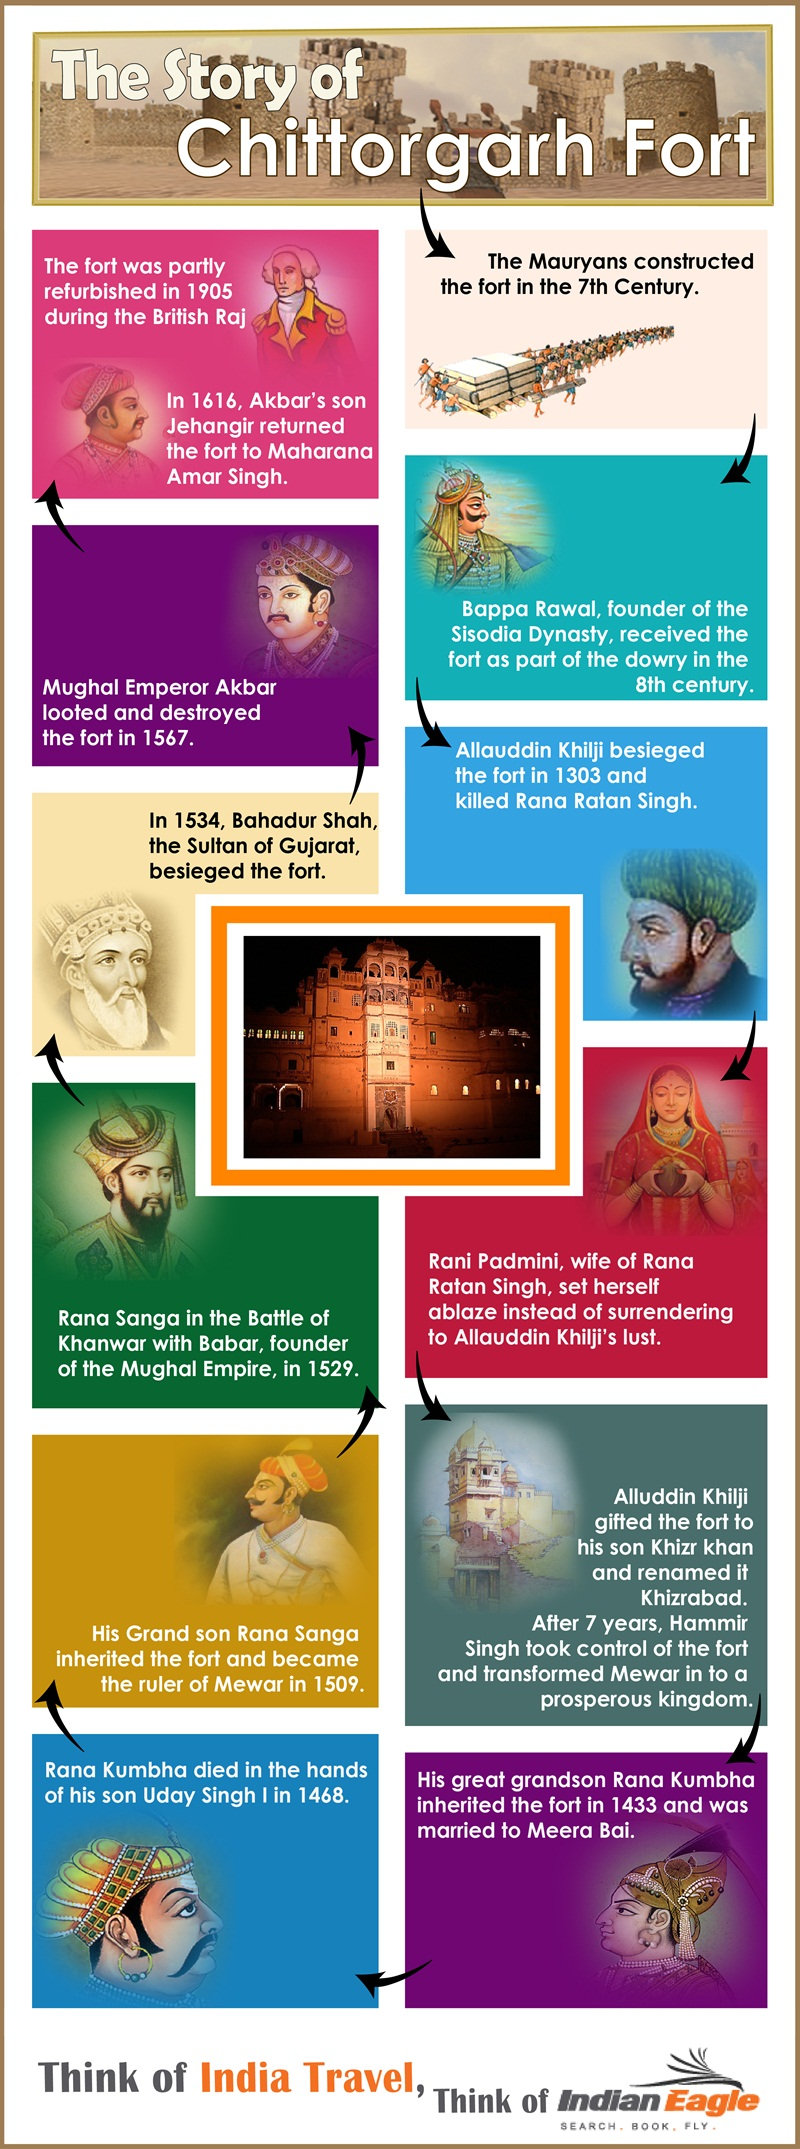 Chittorgarh Fort history, Rani Padmini story, forts of Rajasthan, Rajput history, IndianEagle flights, travel infographics